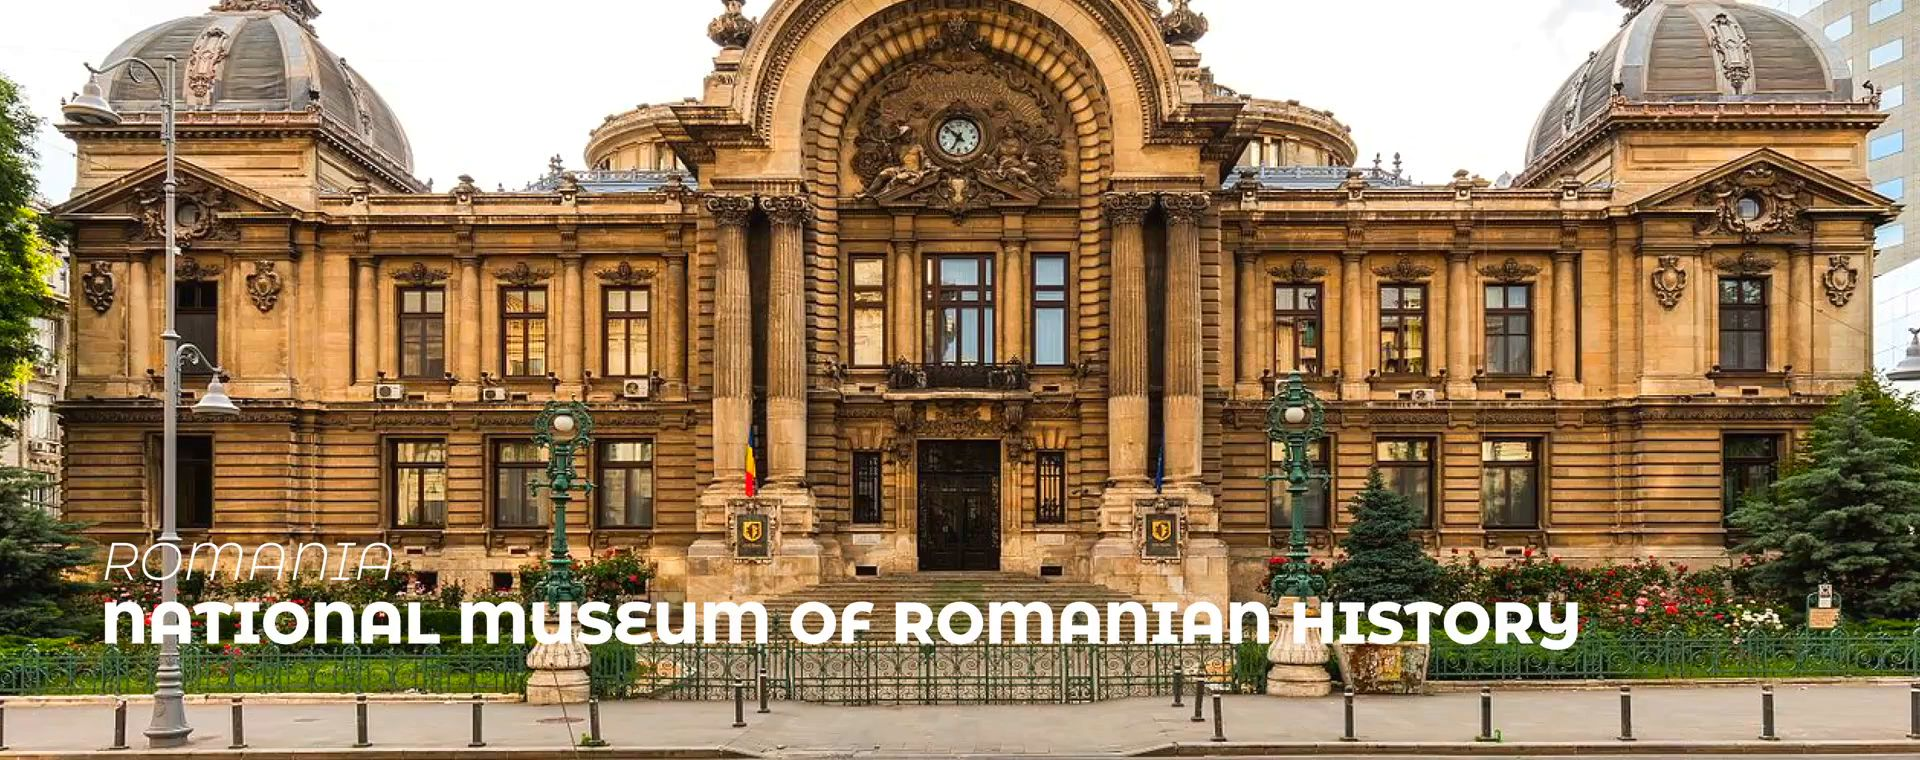 NATIONAL MUSEUM OF ROMANIAN HISTORY